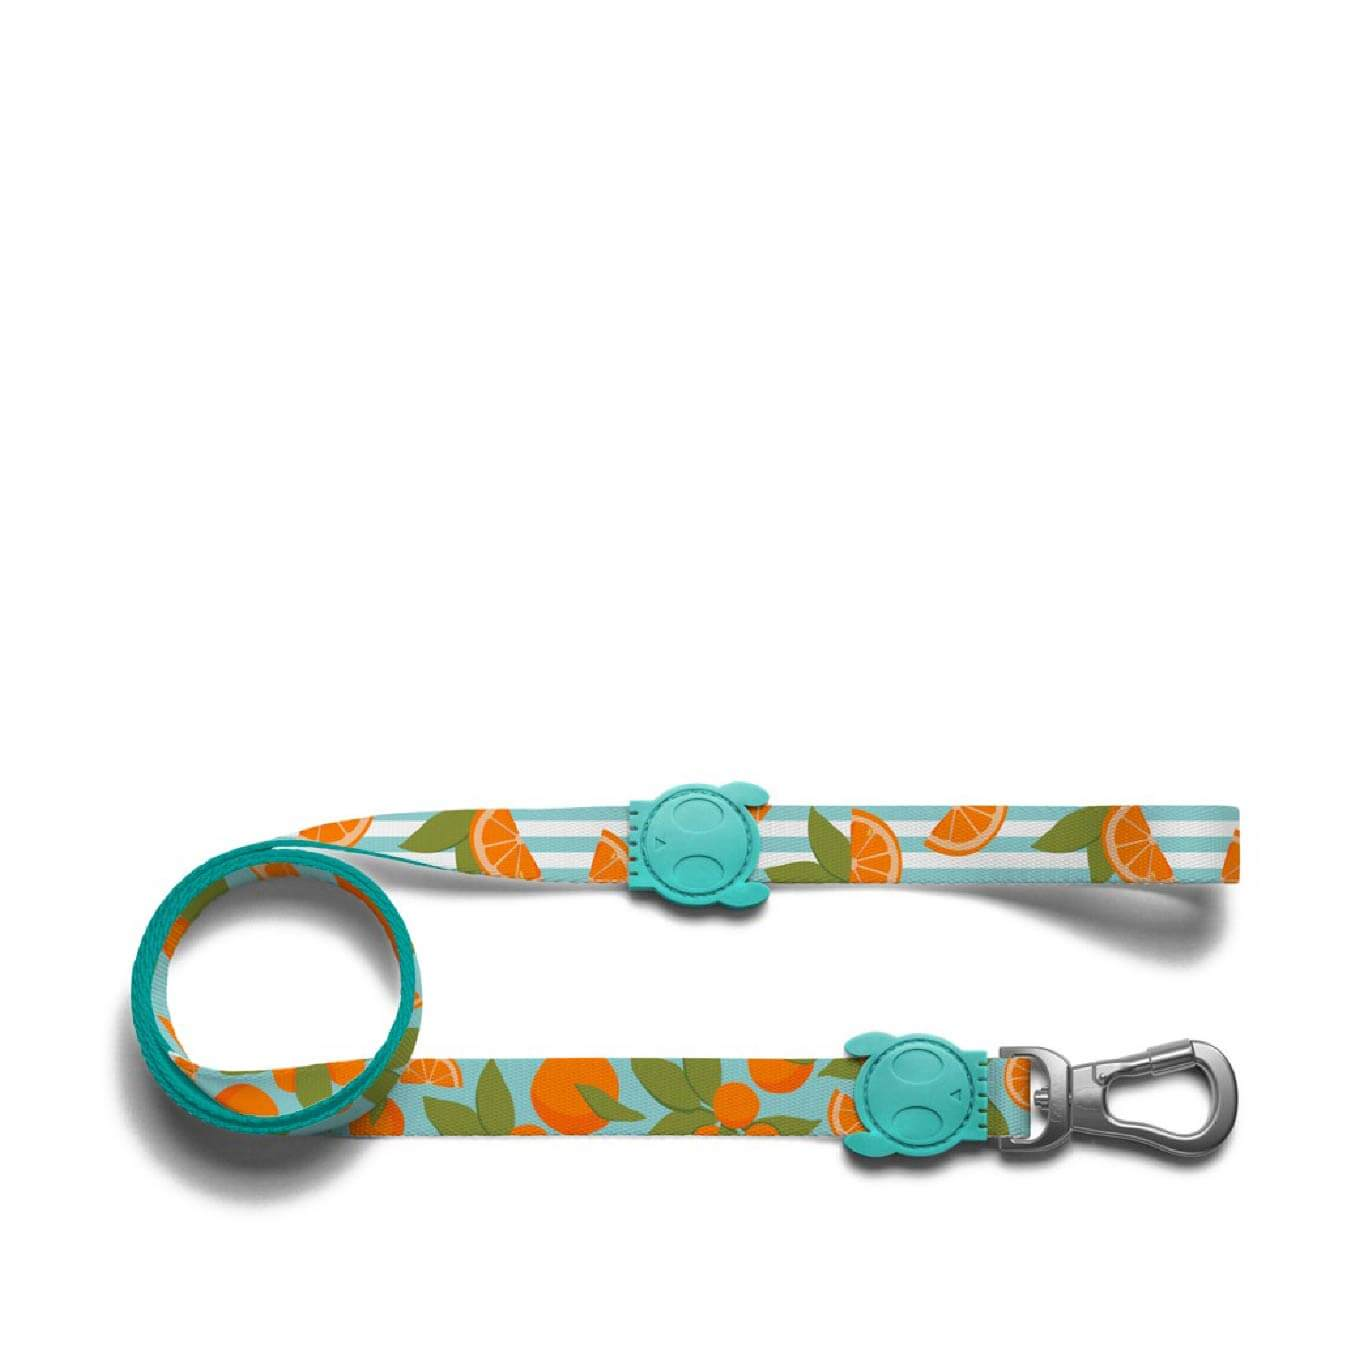 Zee.Dog Florida Dog Leash - Dogs, Leashes, New, Zee.Dog - Shop Vanillapup - Online Pet Shop